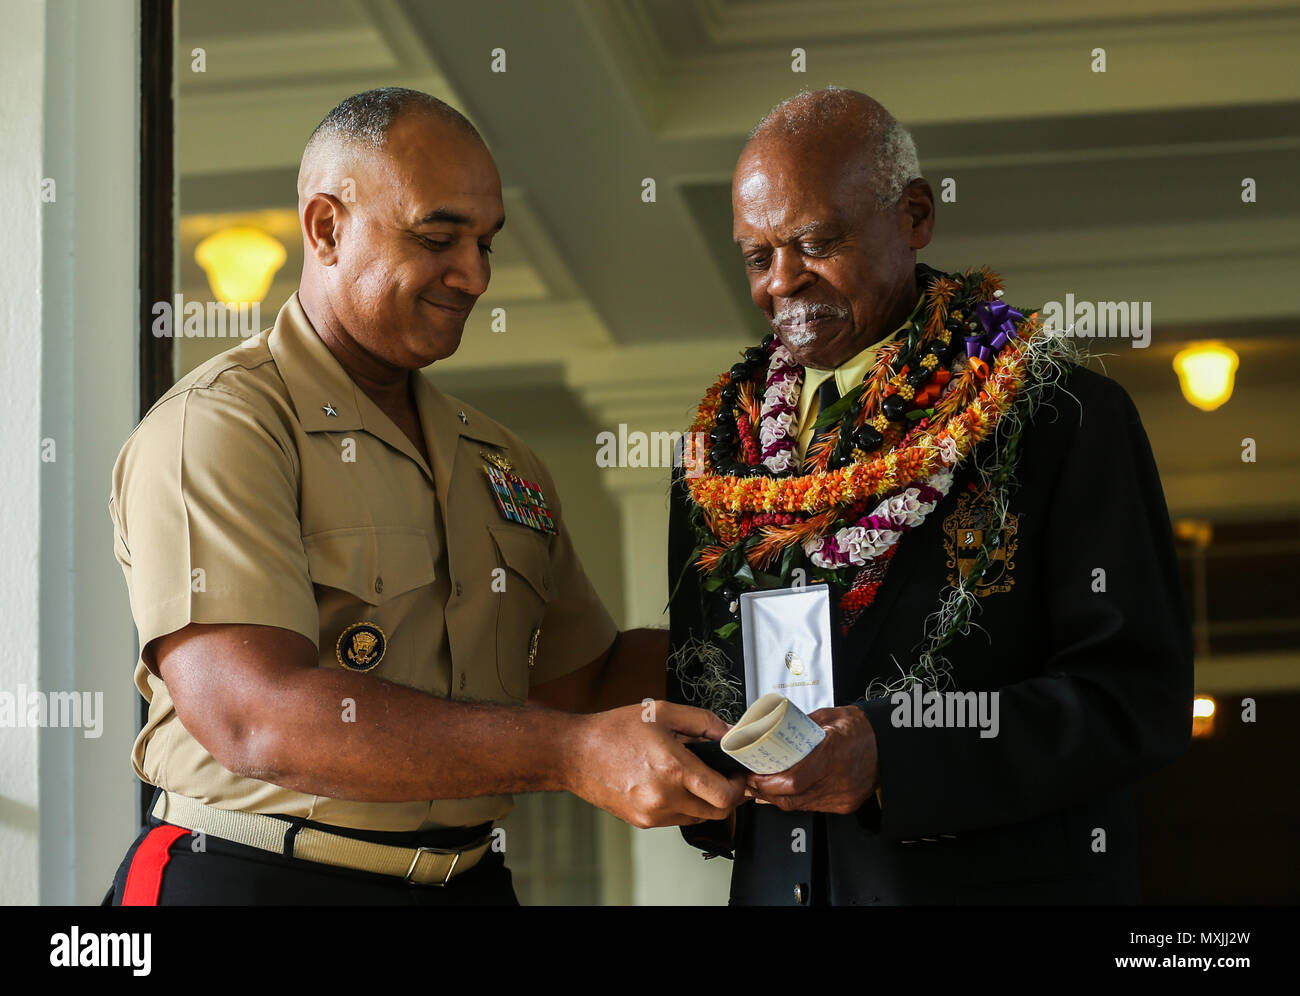 U.S. Marine Corps Brig. Gen. Brian W. Cavanaugh, deputy commander of U.S. Marine Corps Forces, Pacific, presents the Congressional Gold Medal to Dr. Ernest James Harris, Jr. in Honolulu Nov. 12, 2016. Harris was awarded his Congressional Gold Medal for his service as a Montford Point Marine. (U.S. Marine Corps photo by Cpl. Wesley Timm) - Stock Image